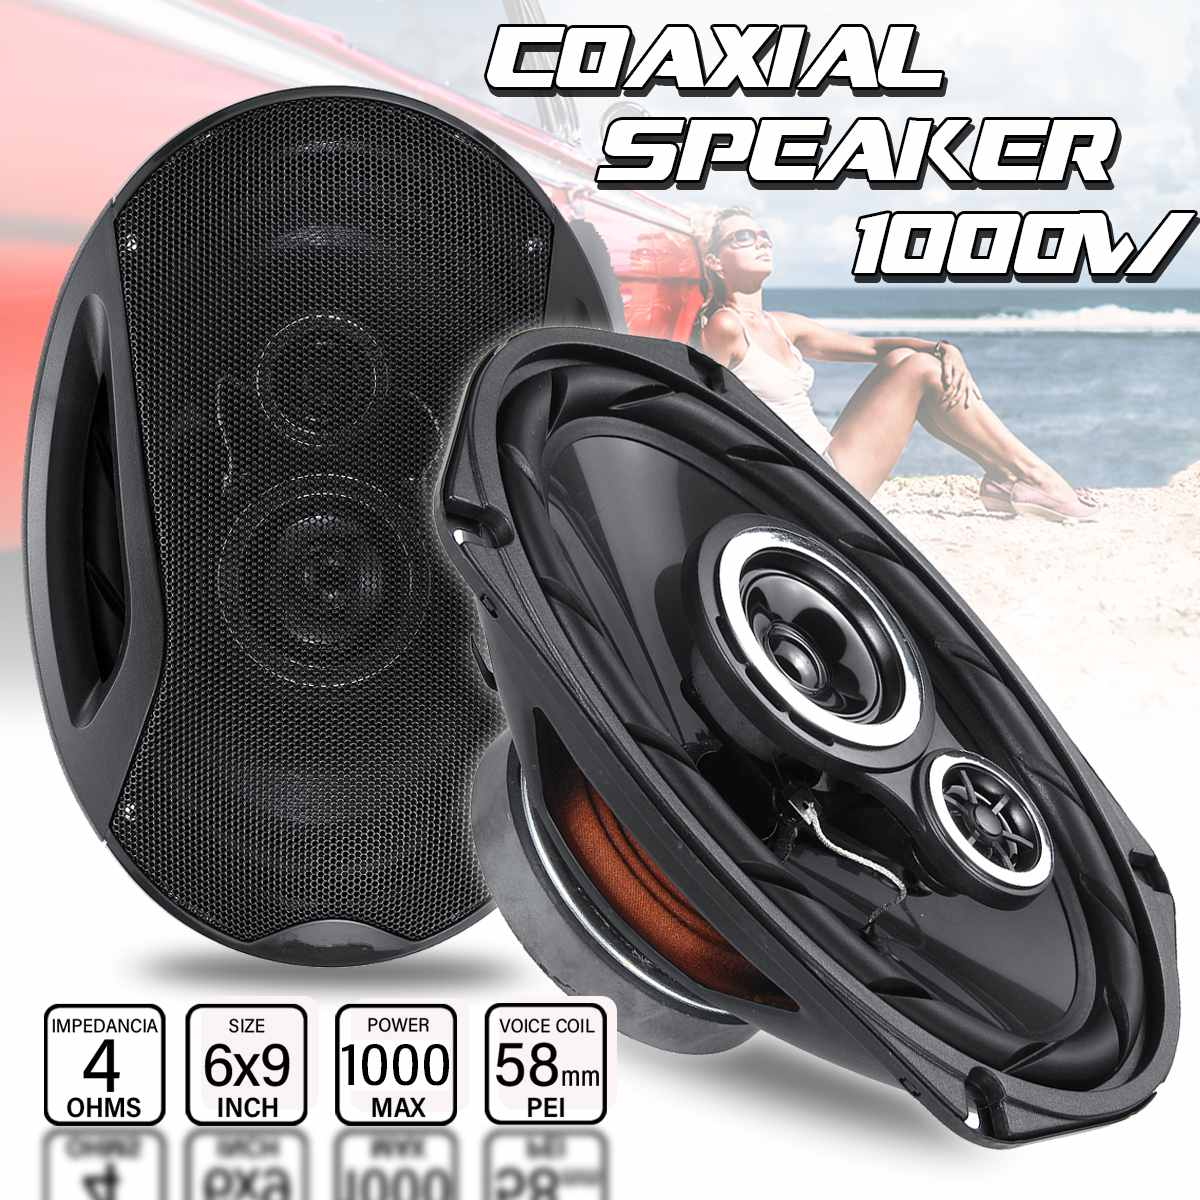 2pcs 1000W Max 12V High Resolution Universal Car Speaker 6x9 inches Coaxial Speakers Vehicle Auto Audio Music Stereo Full HiFi